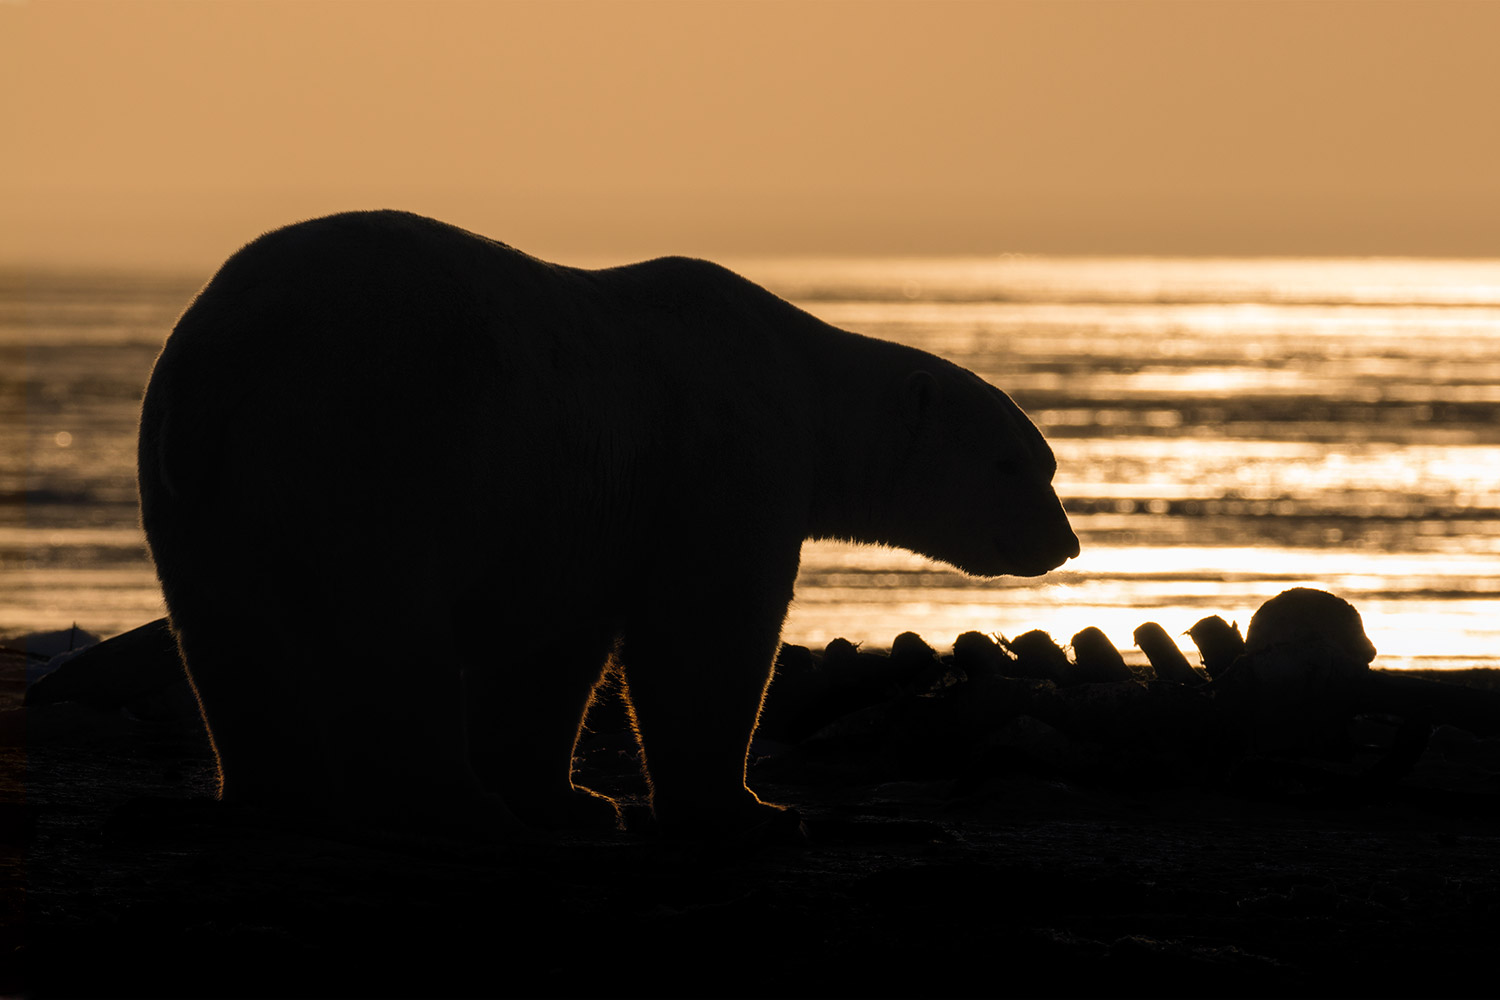 Polar-bear-against-sunrise-sky,-Arctic-National-Wildlife-Refuge,-Alaska,-USA